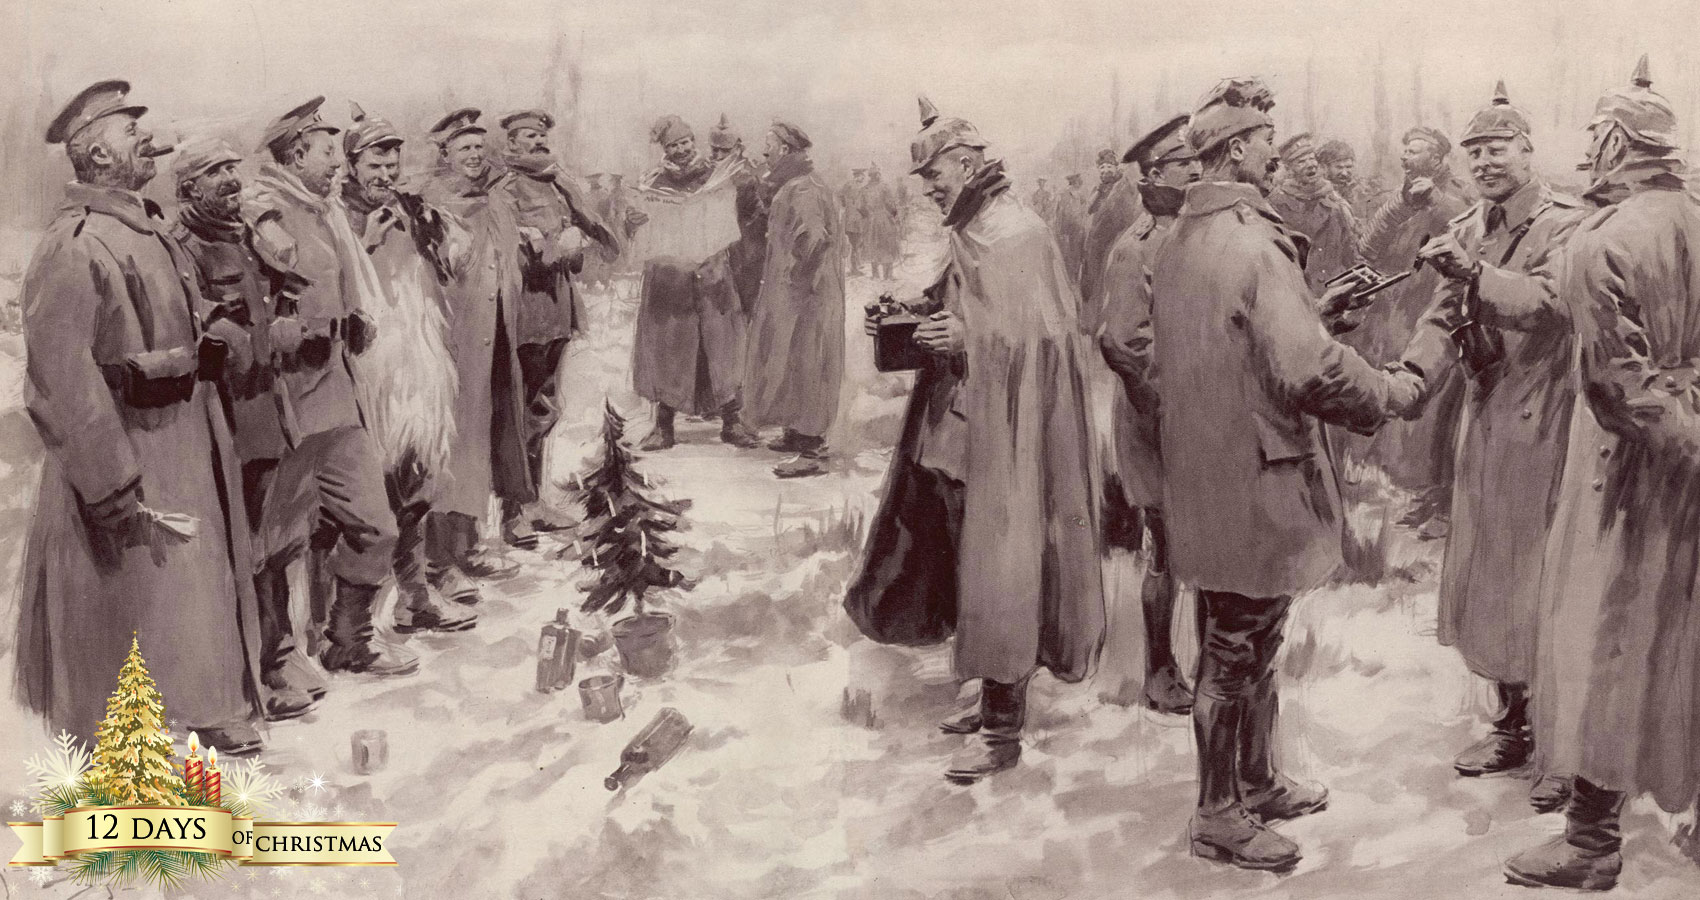 A Christmas Truce by William T Fearby at Spillwords.com